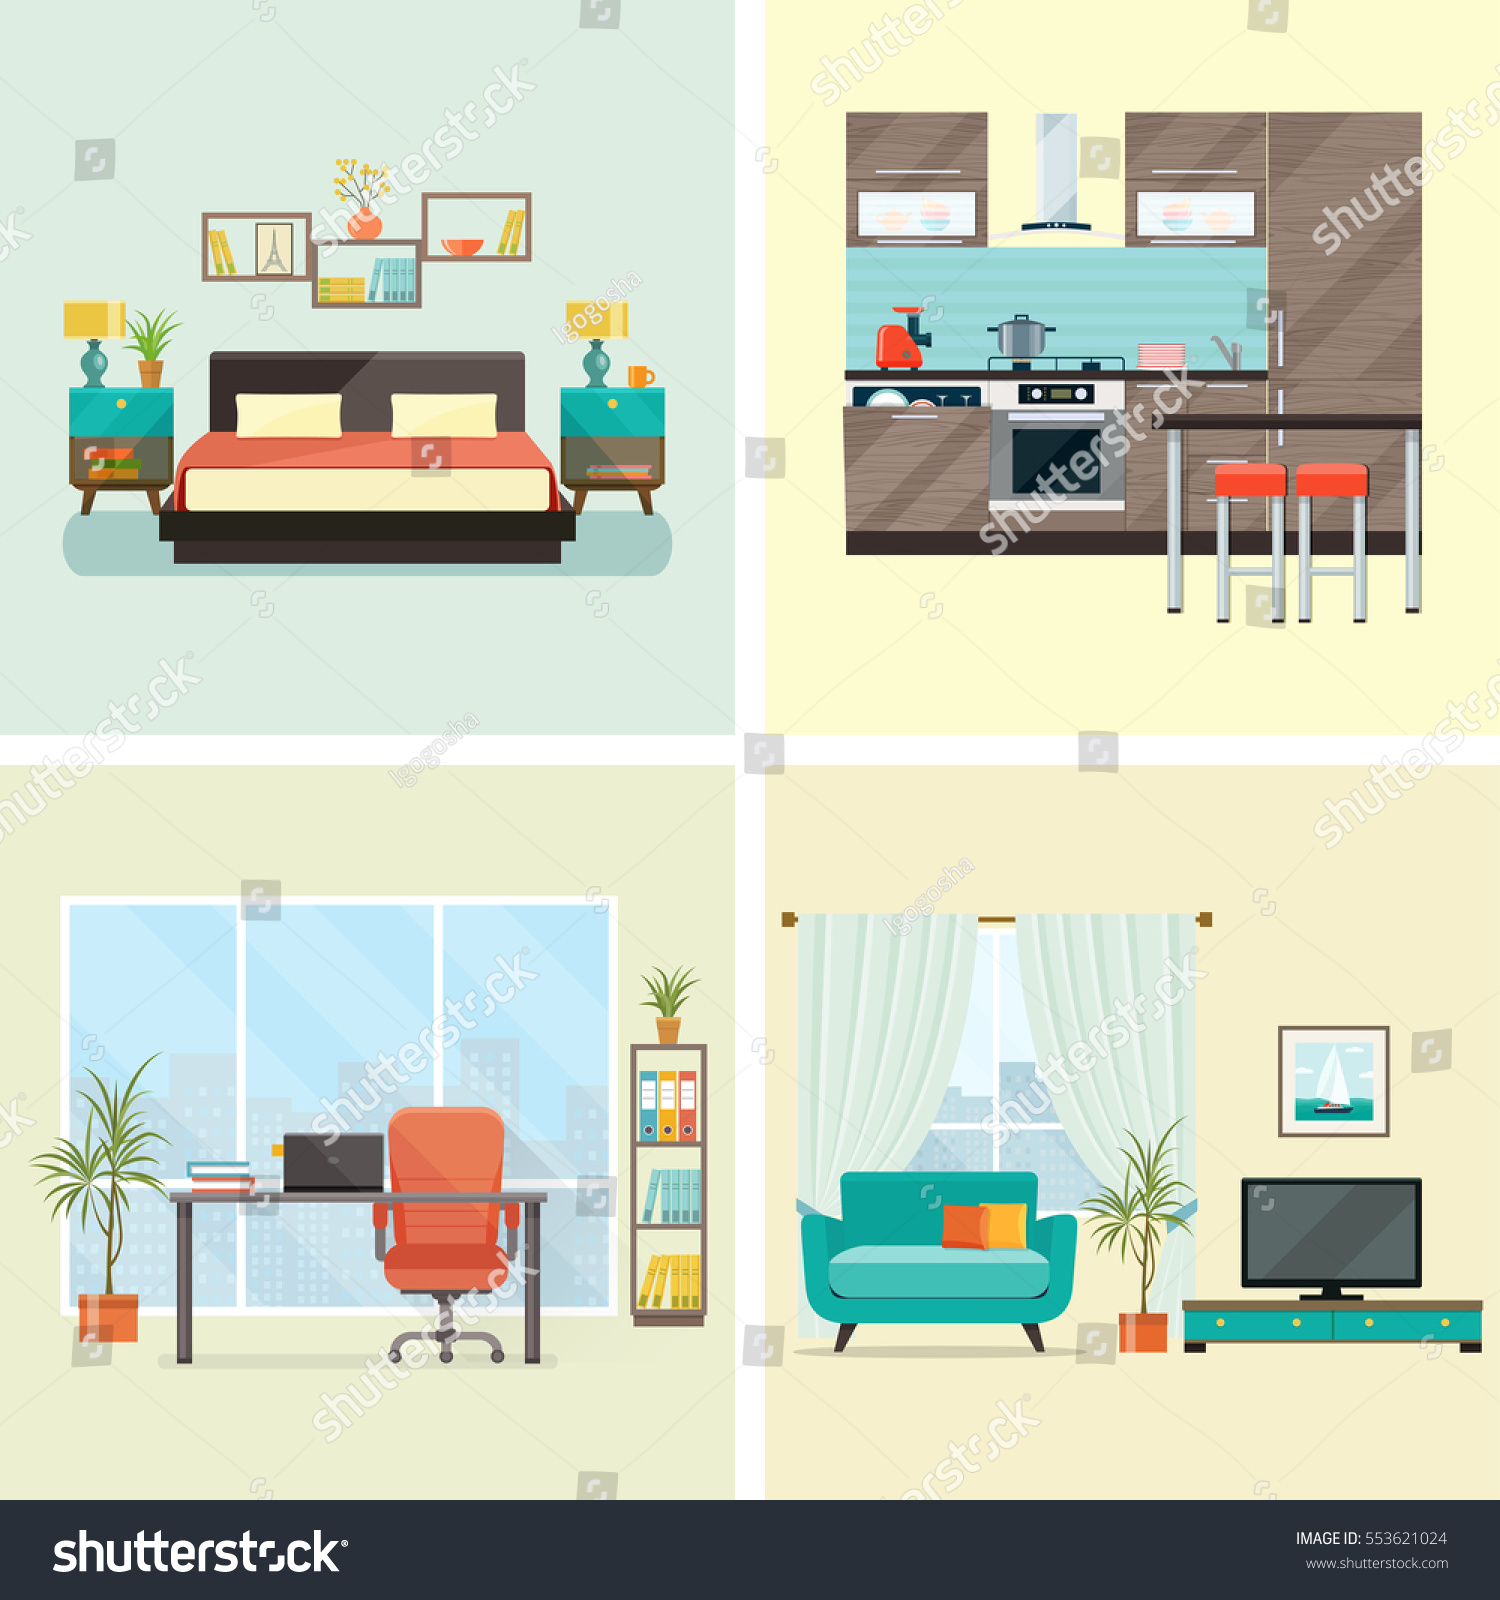 Set interior design house rooms furniture stock vector for Room design vector